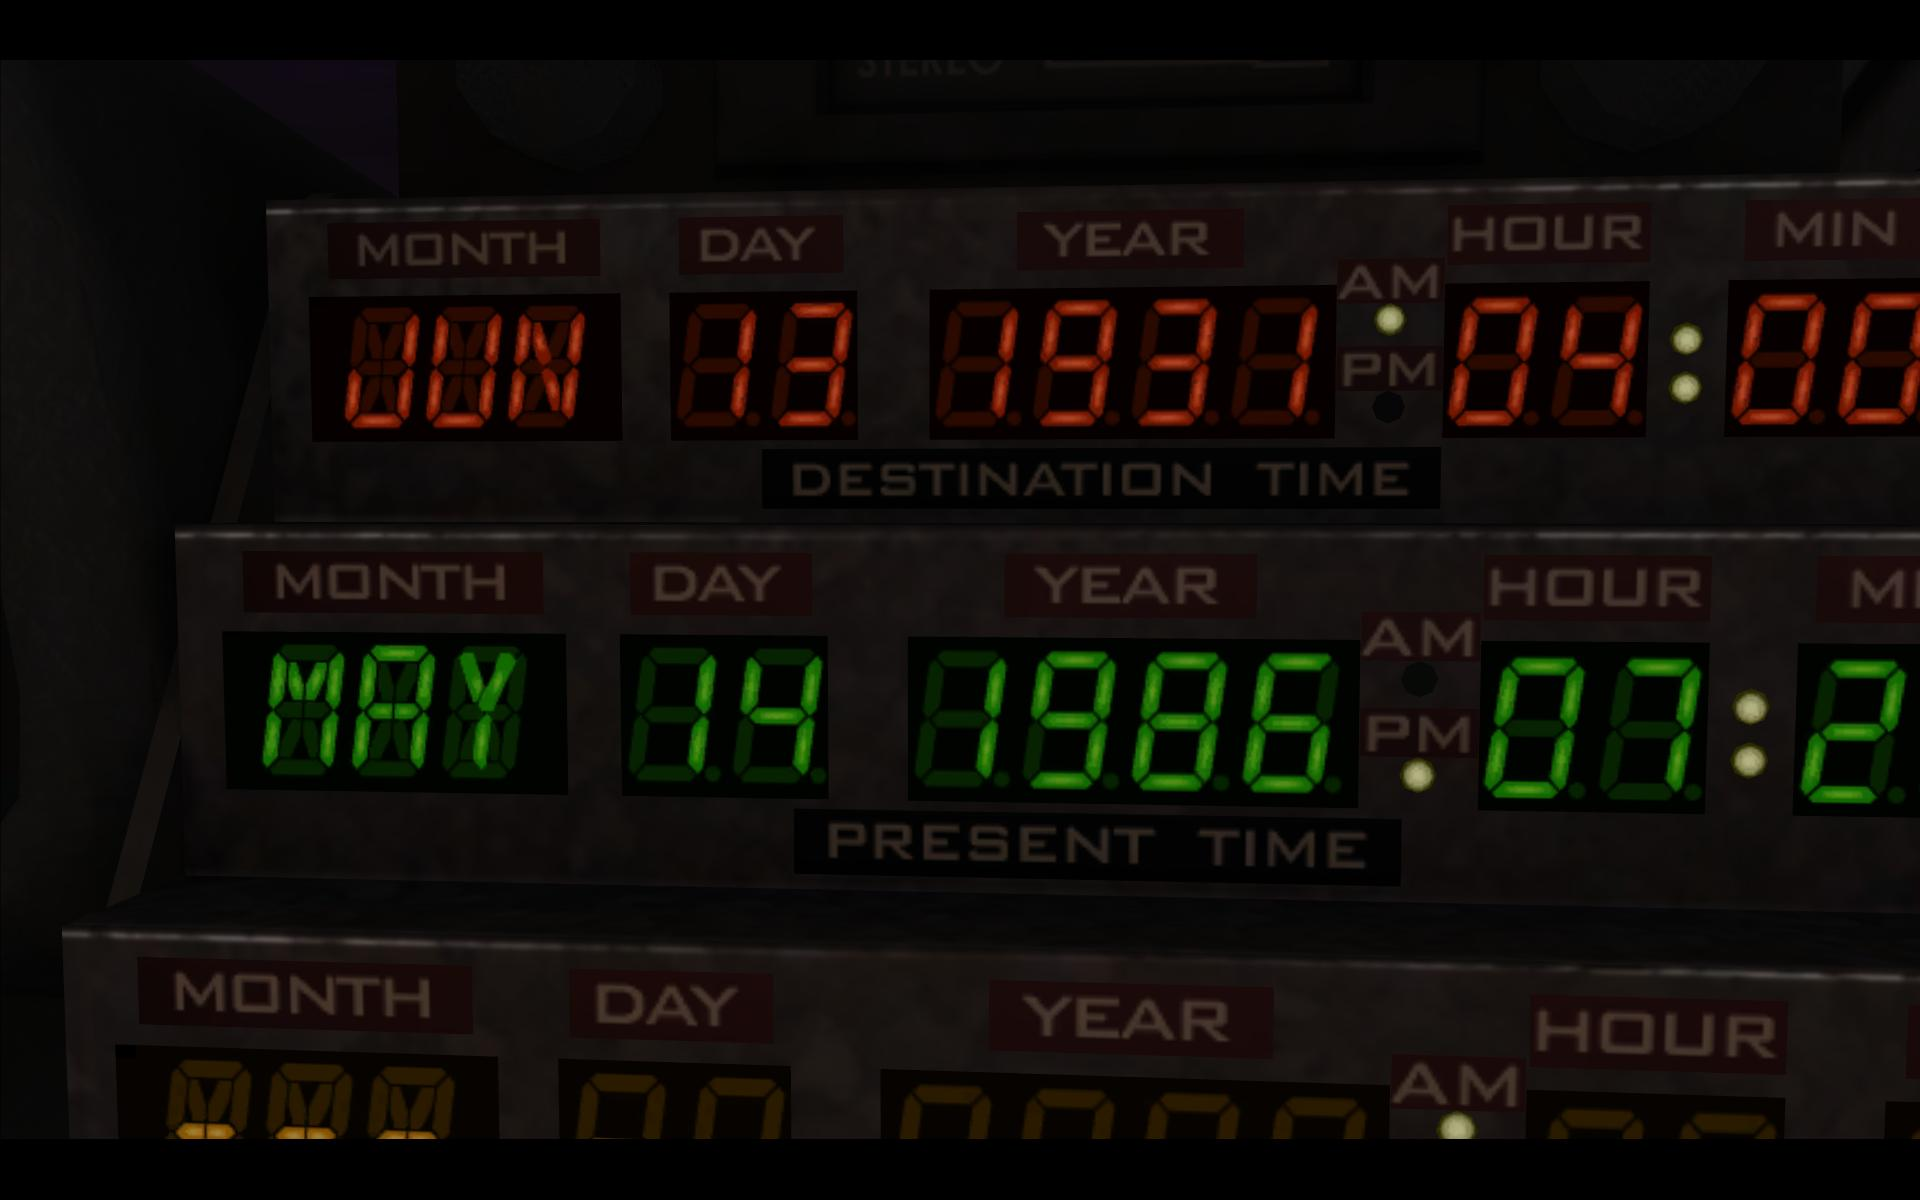 backtothefuture101-2010-12-25-16-55-05-42